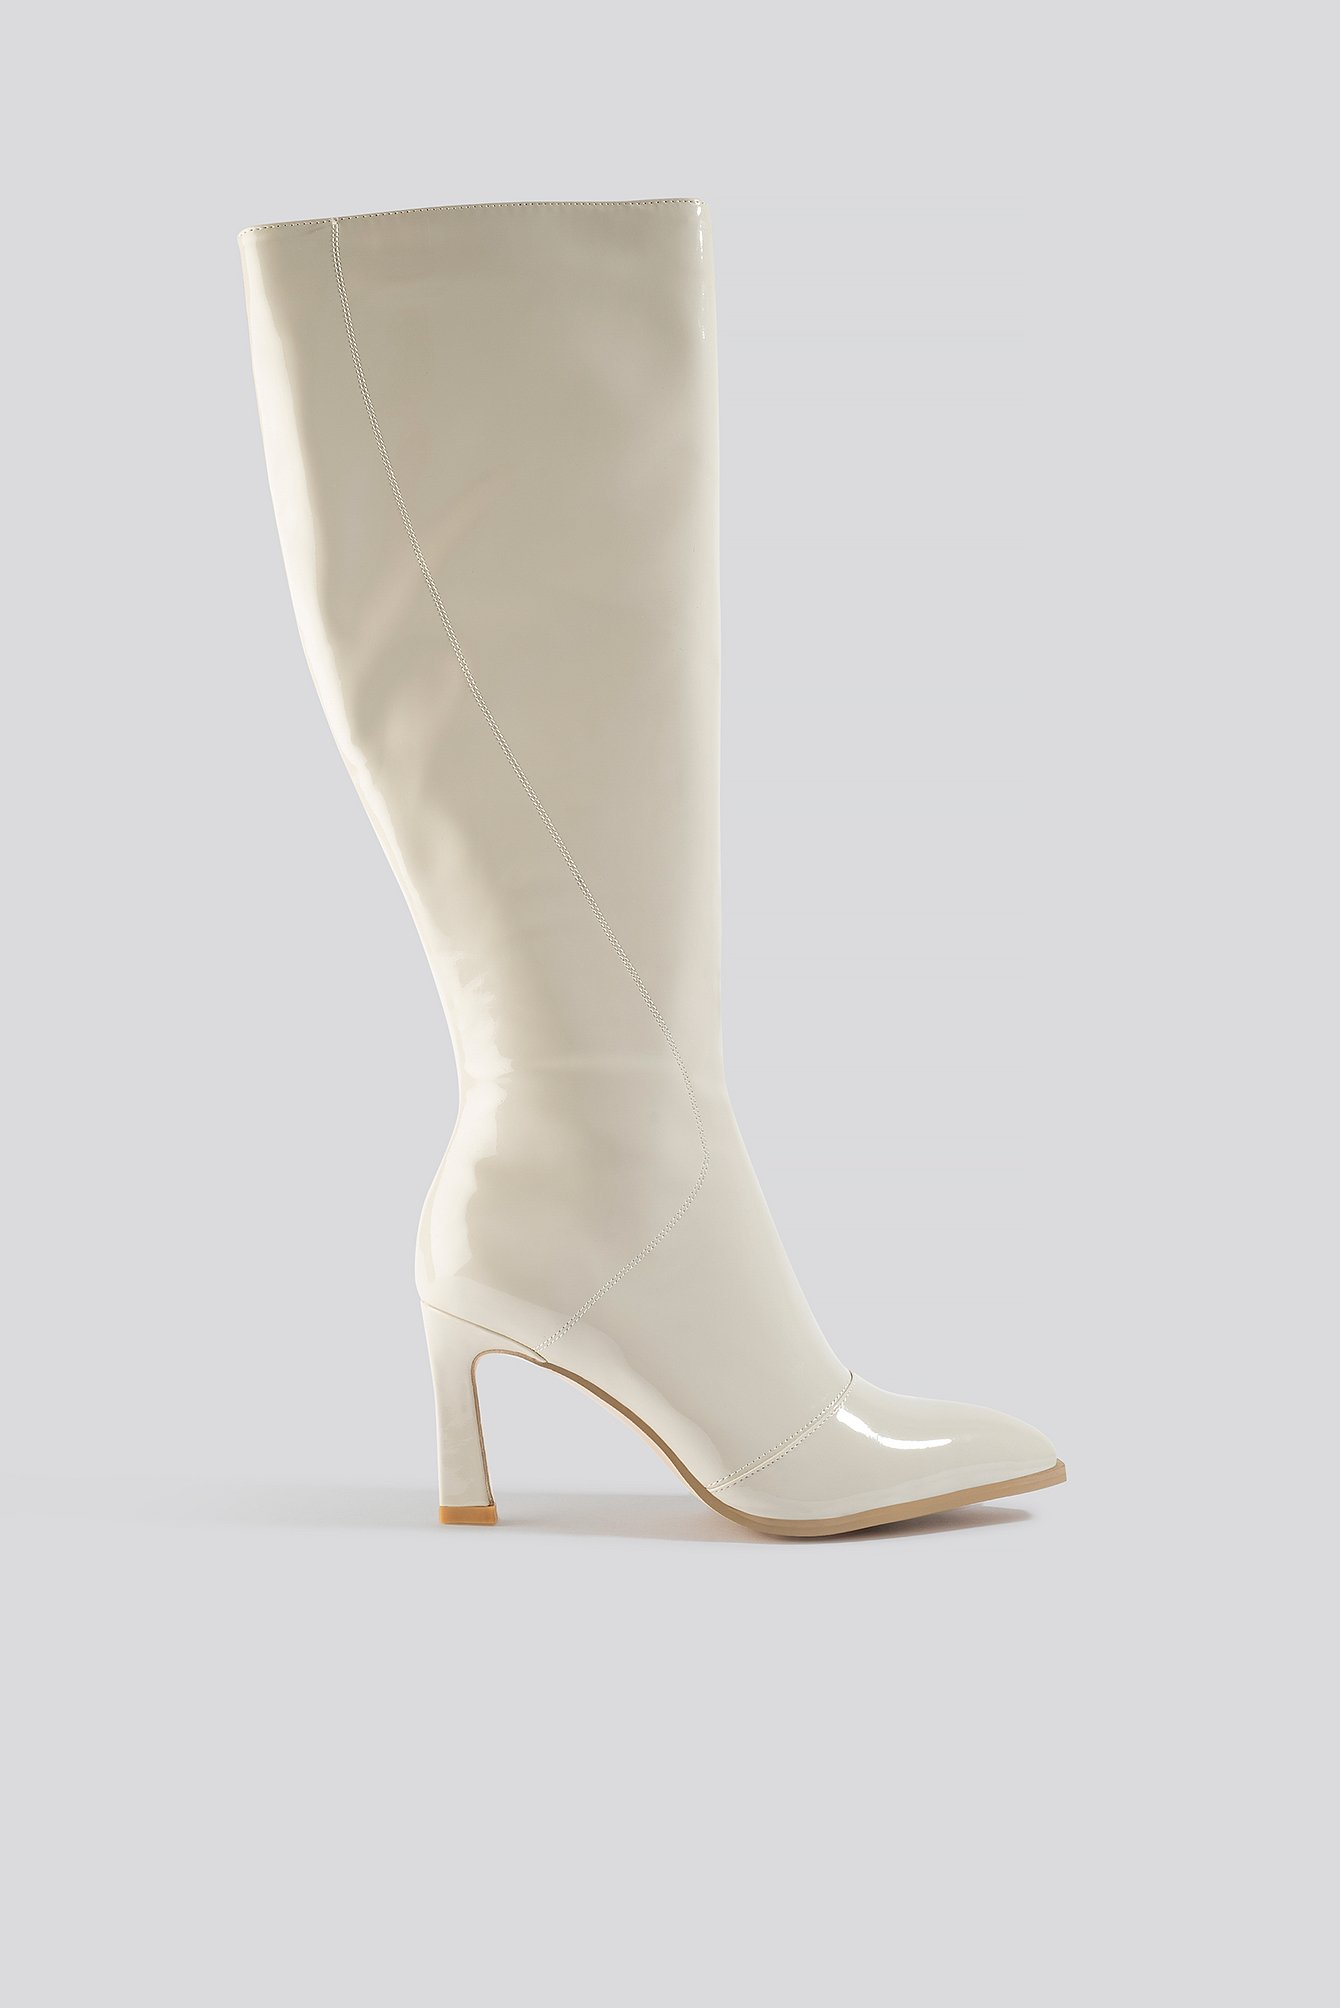 na-kd shoes -  Glossy Patent Shaft Boots - White